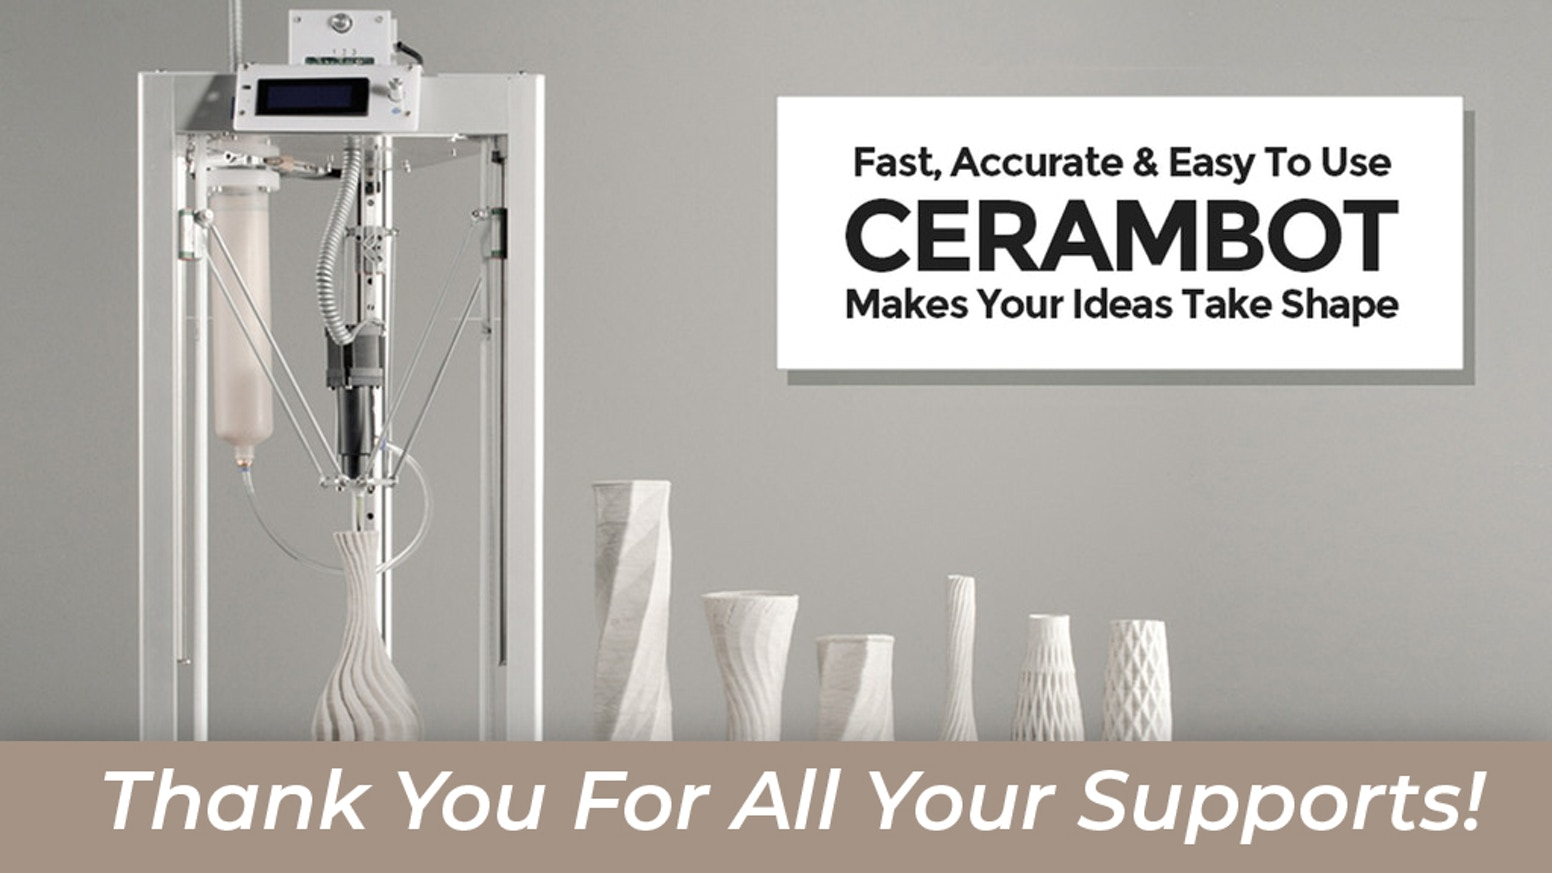 Fast, accurate and easy to use, CERAMBOT makes your ideas take shape